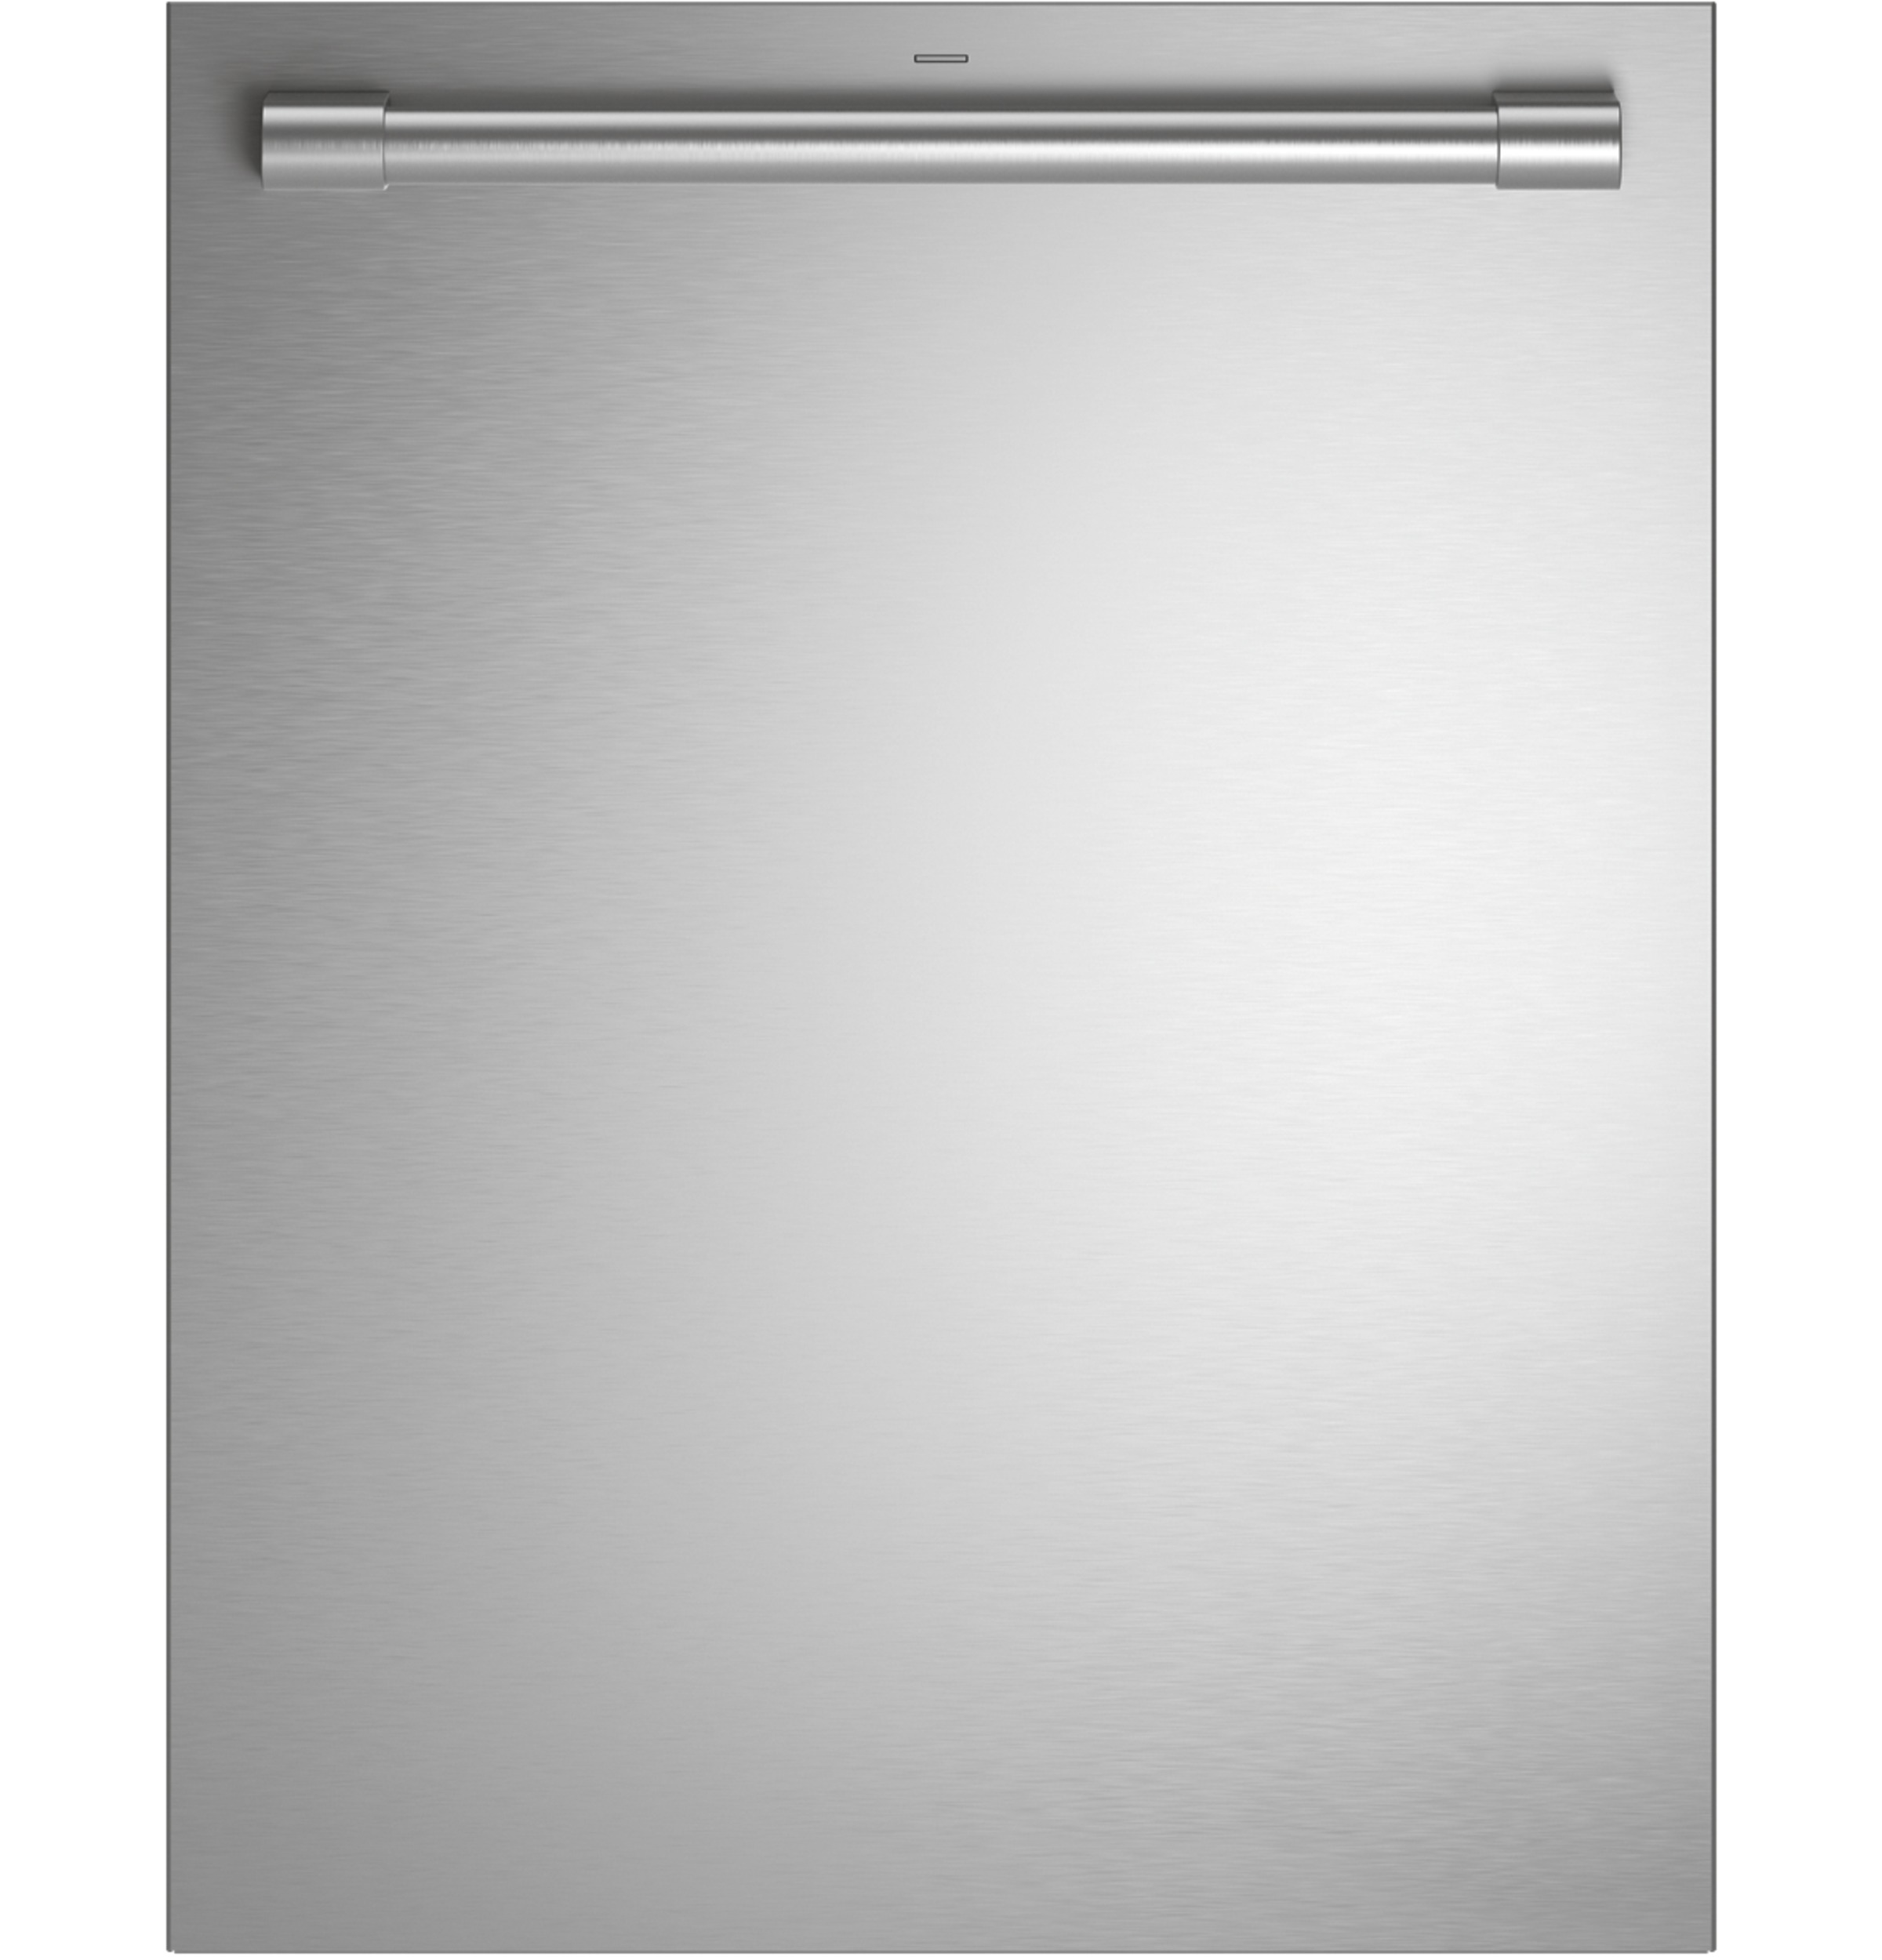 Monogram Dishwasher ZDT985SPNSS